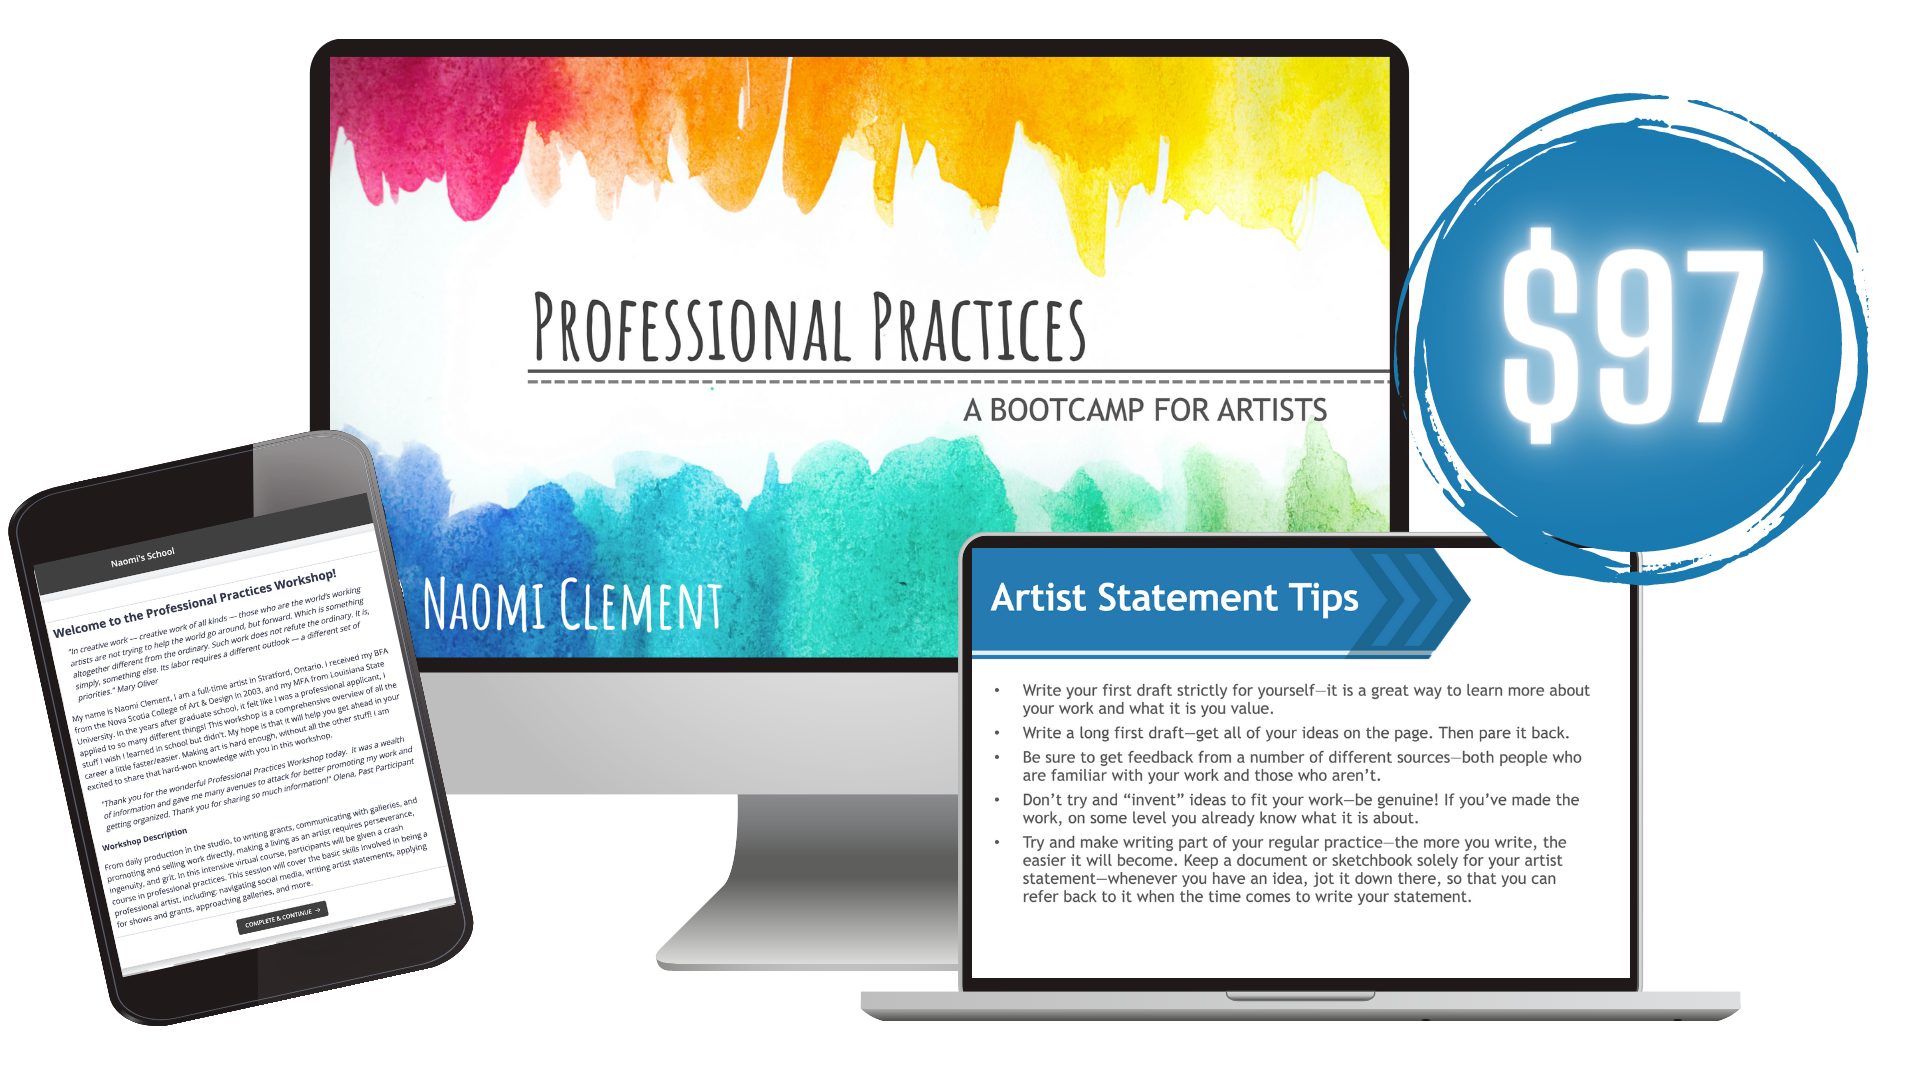 Professional Practices: A Bootcamp for Artists